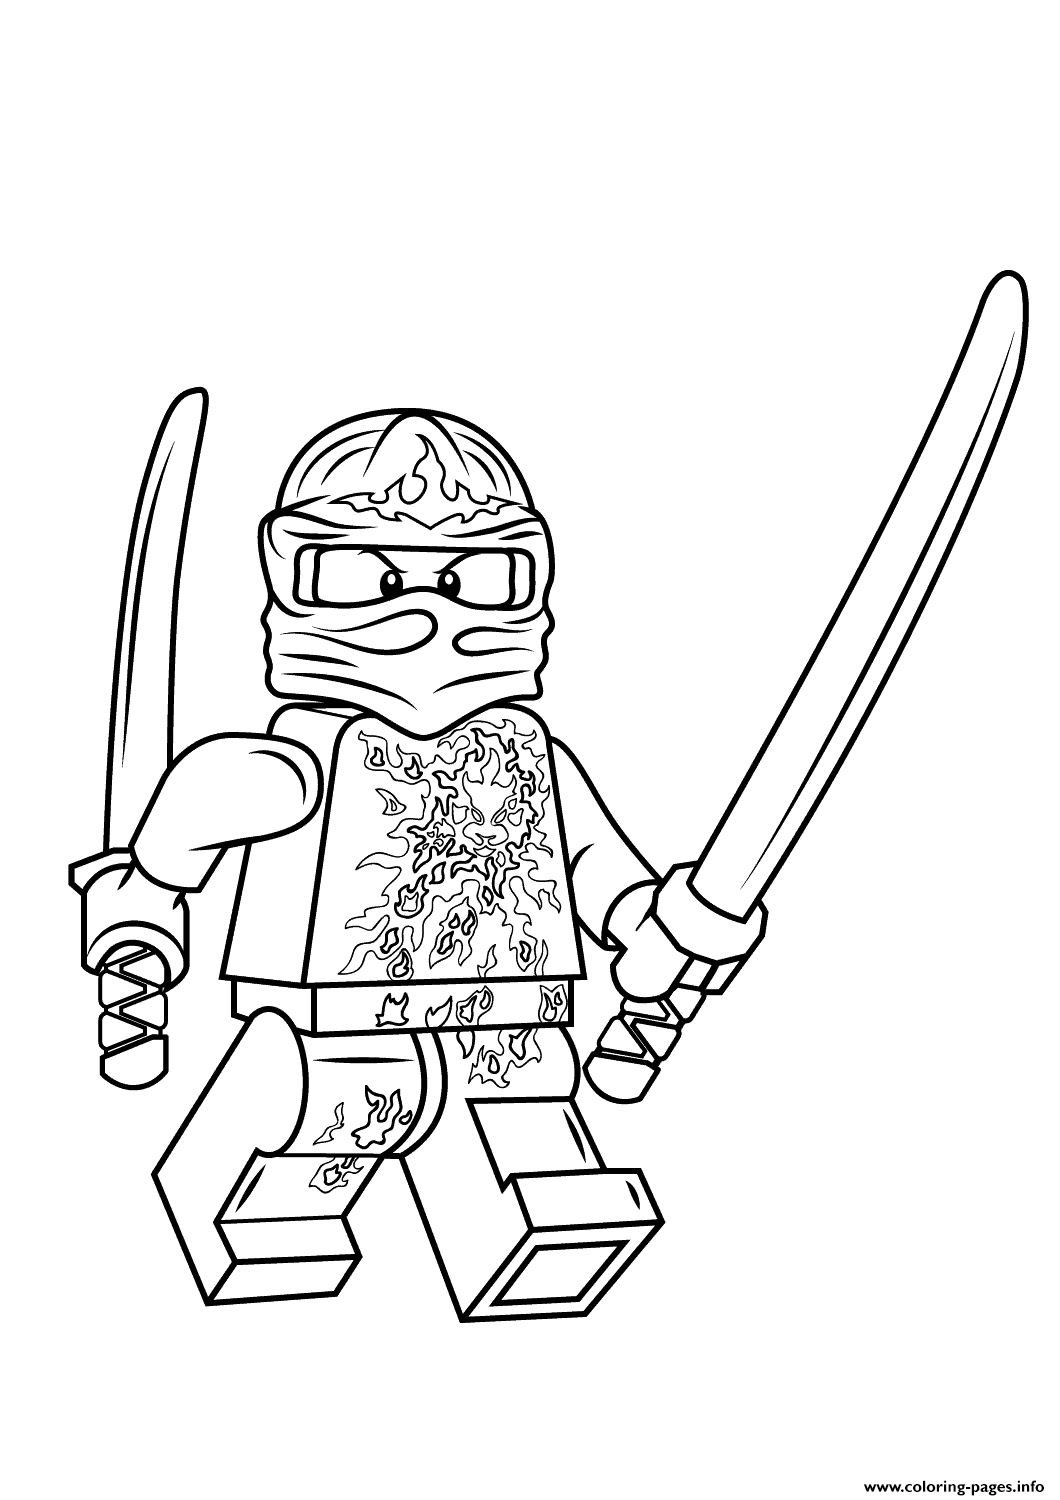 Lego Ninjago Kai Nrg Coloring Pages